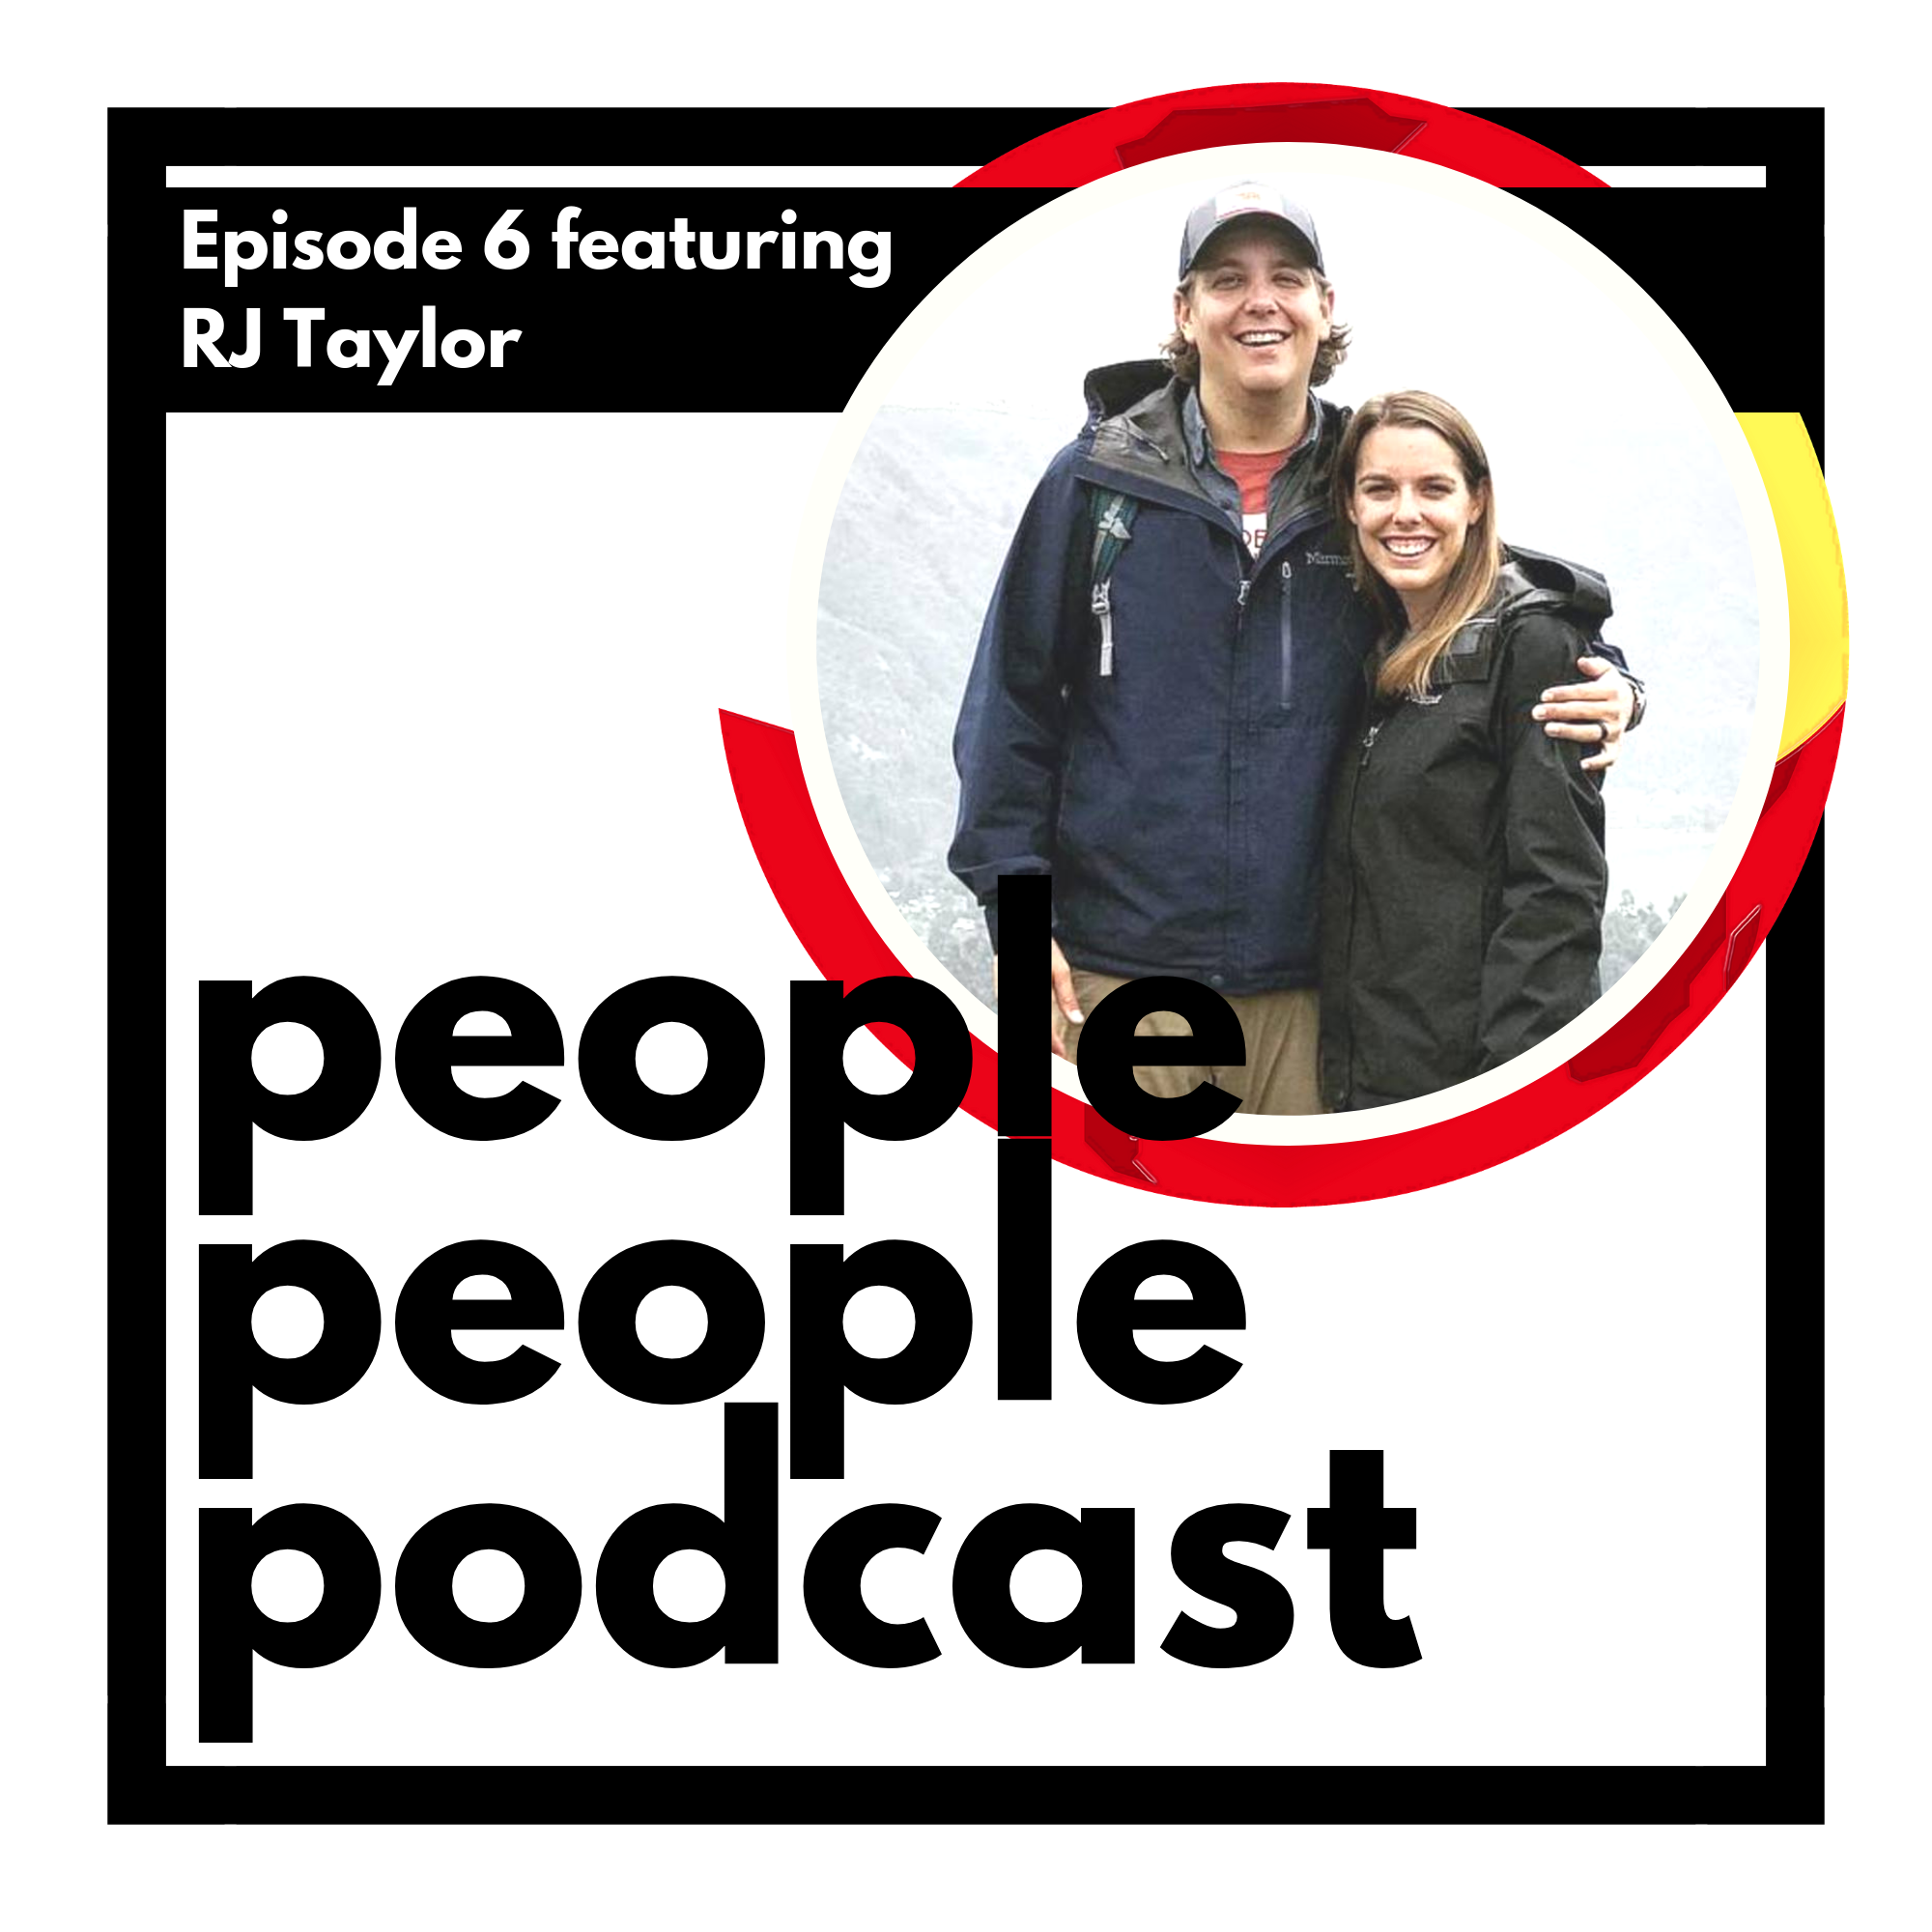 people people podcast (8).png